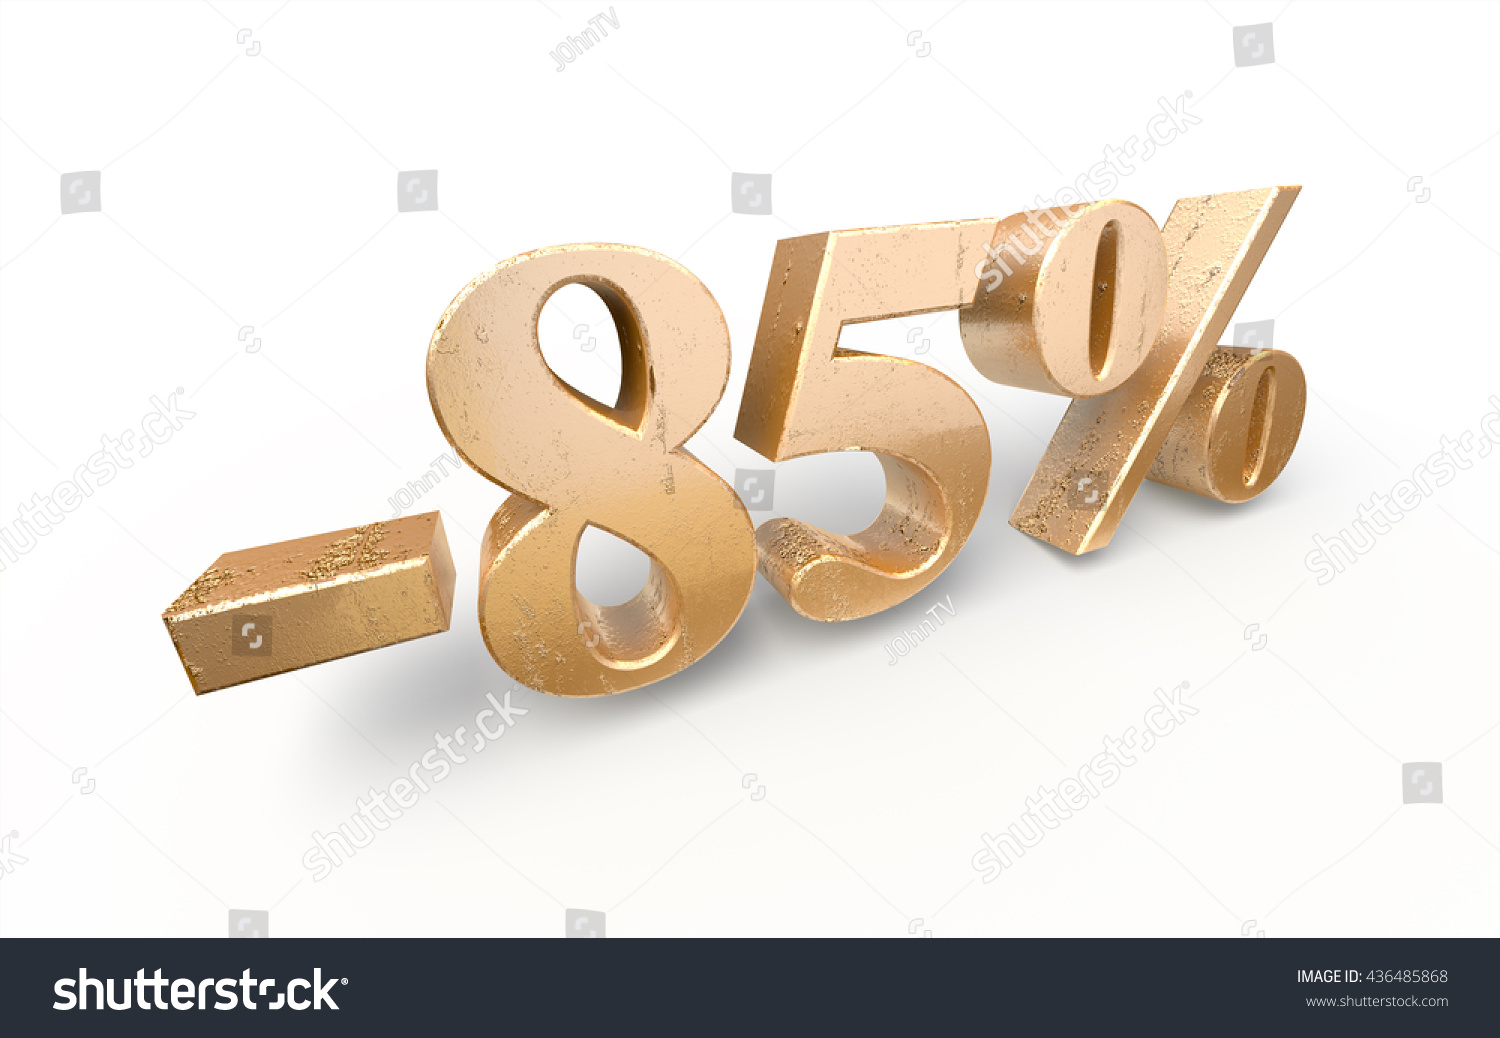 Gold dirty text 85 percent off stock illustration 436485868 gold dirty text 85 percent off isolated on white background 3d discount illustration biocorpaavc Choice Image